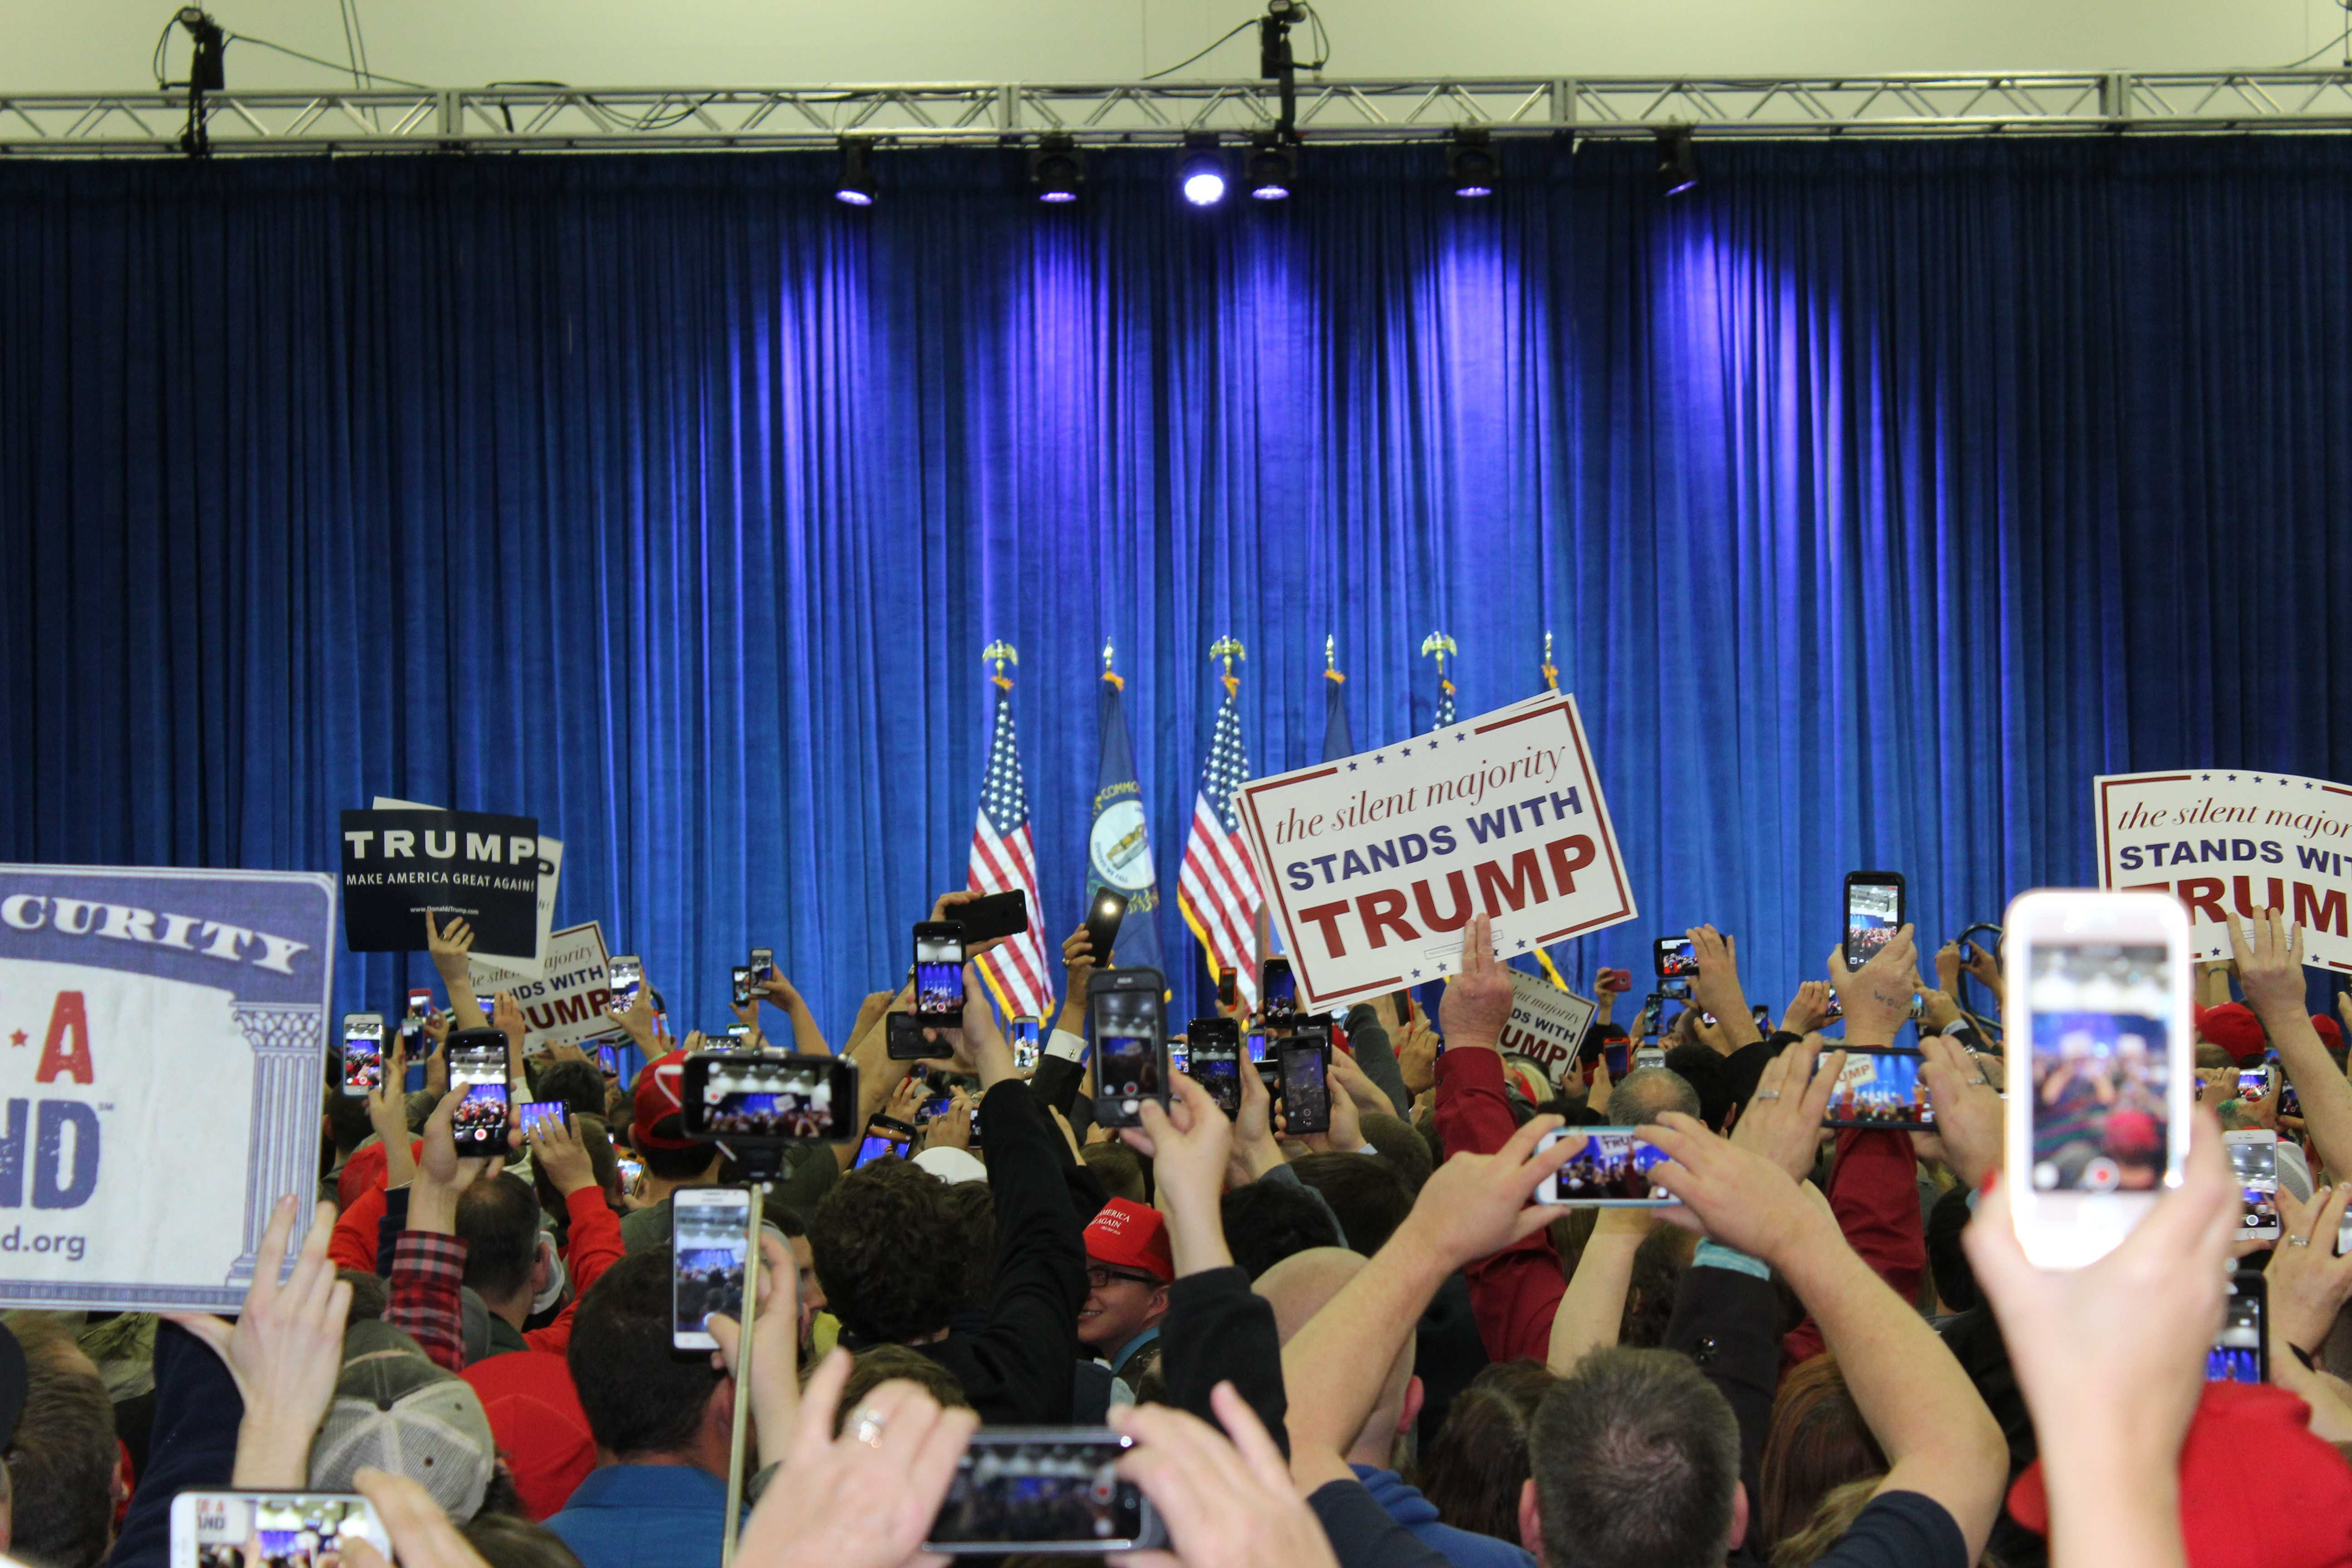 Even before Trump walked out on stage, supporters in the crowd continuously clapped and chanted slogans. Photo by Olivia Evans.